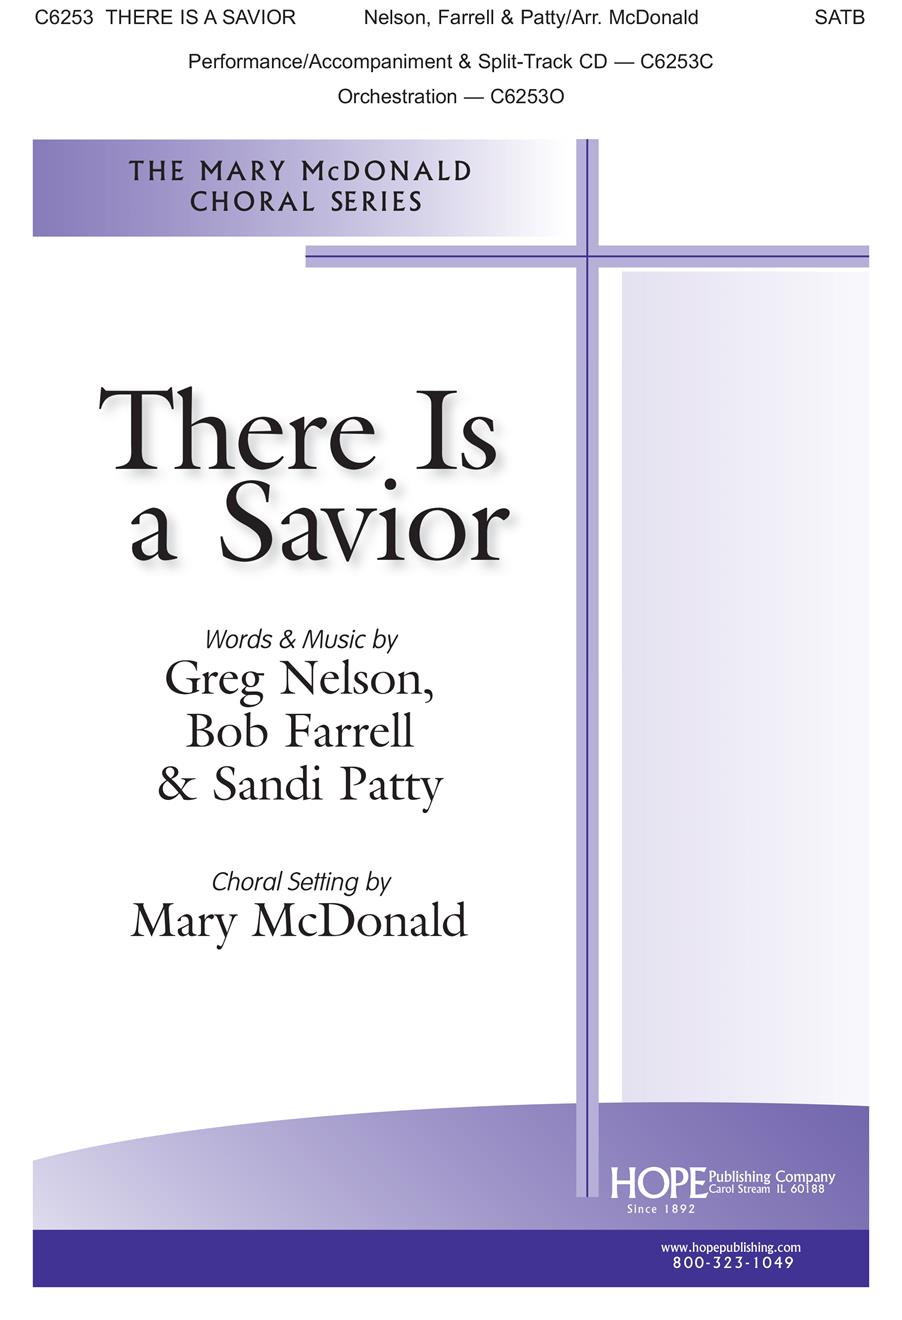 There Is A Savior - SATB Cover Image